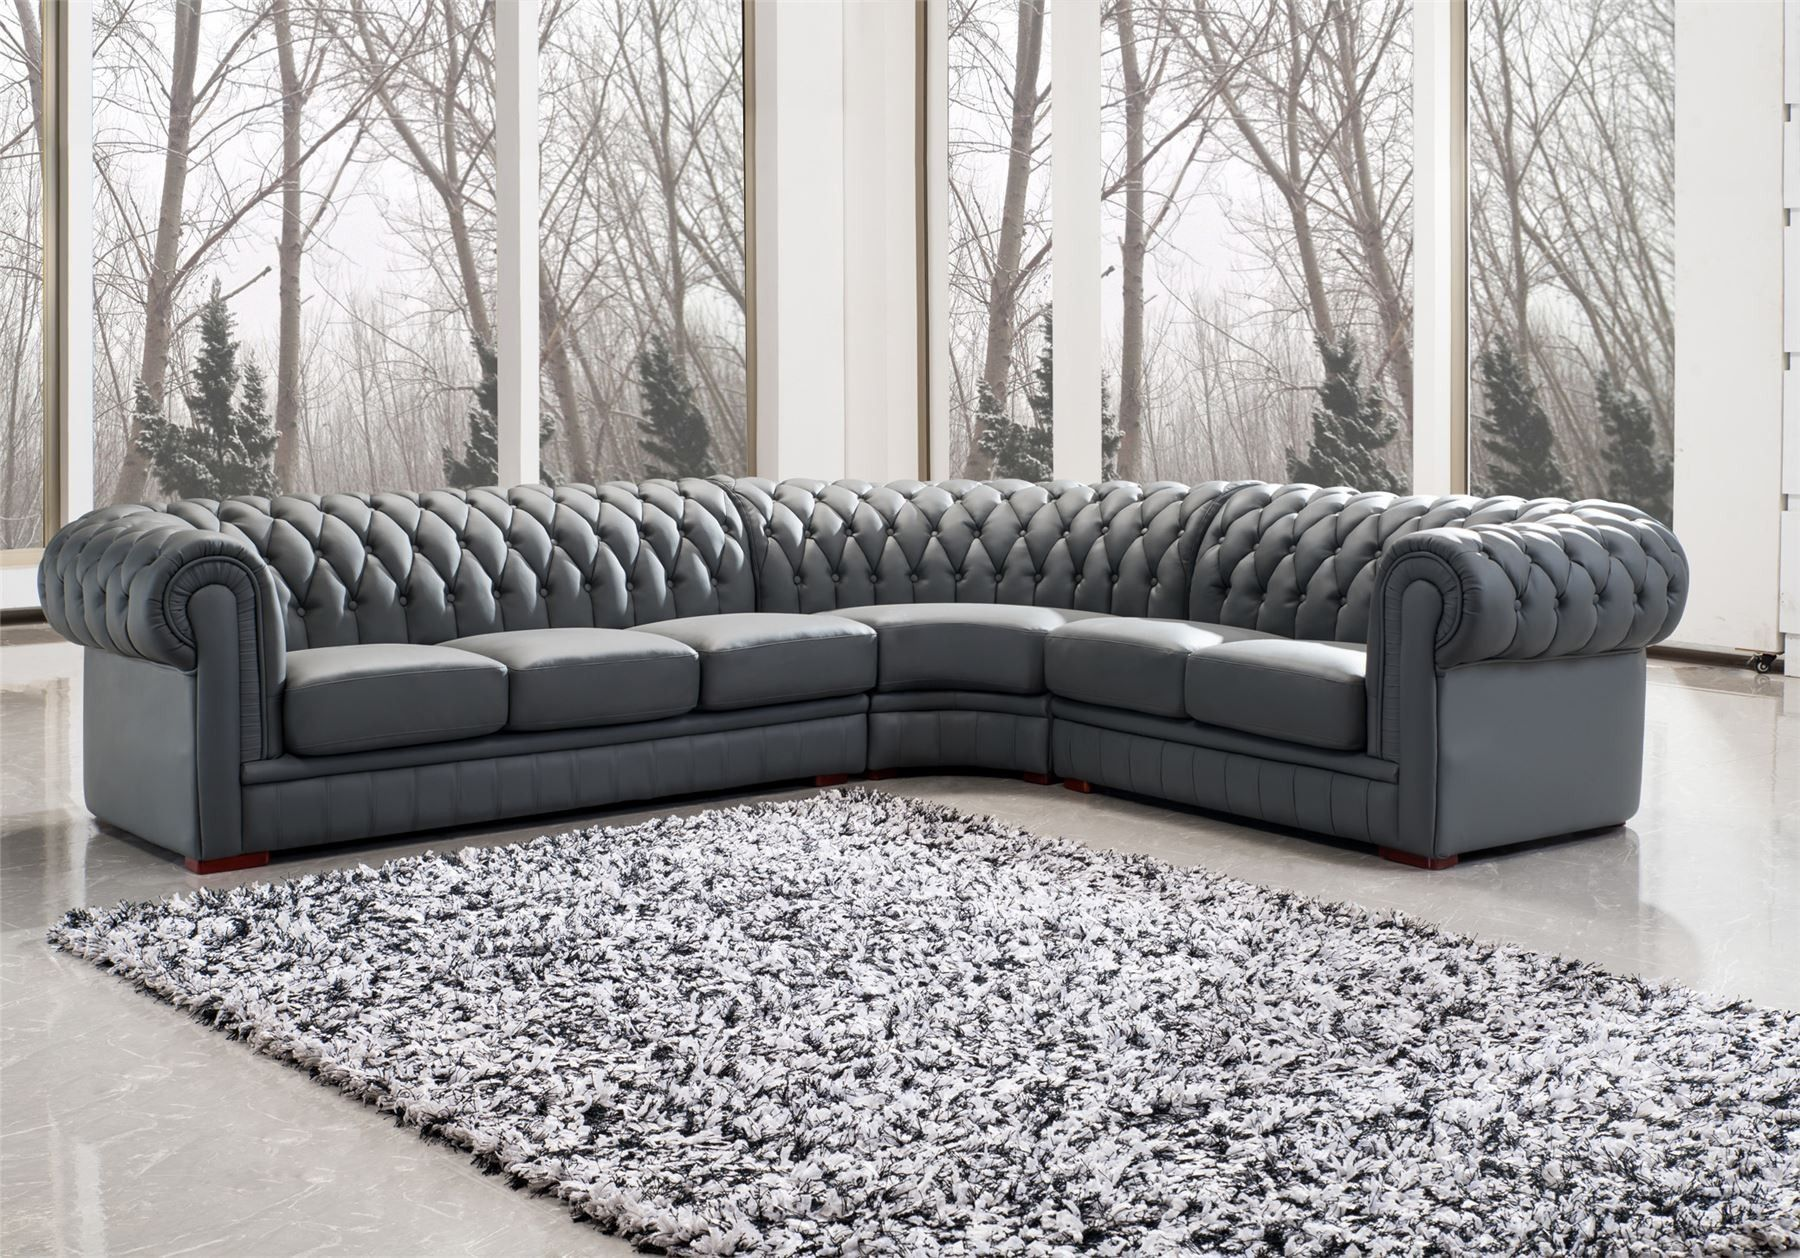 grey upholstered sectional leather chesterfield sofa in corner living